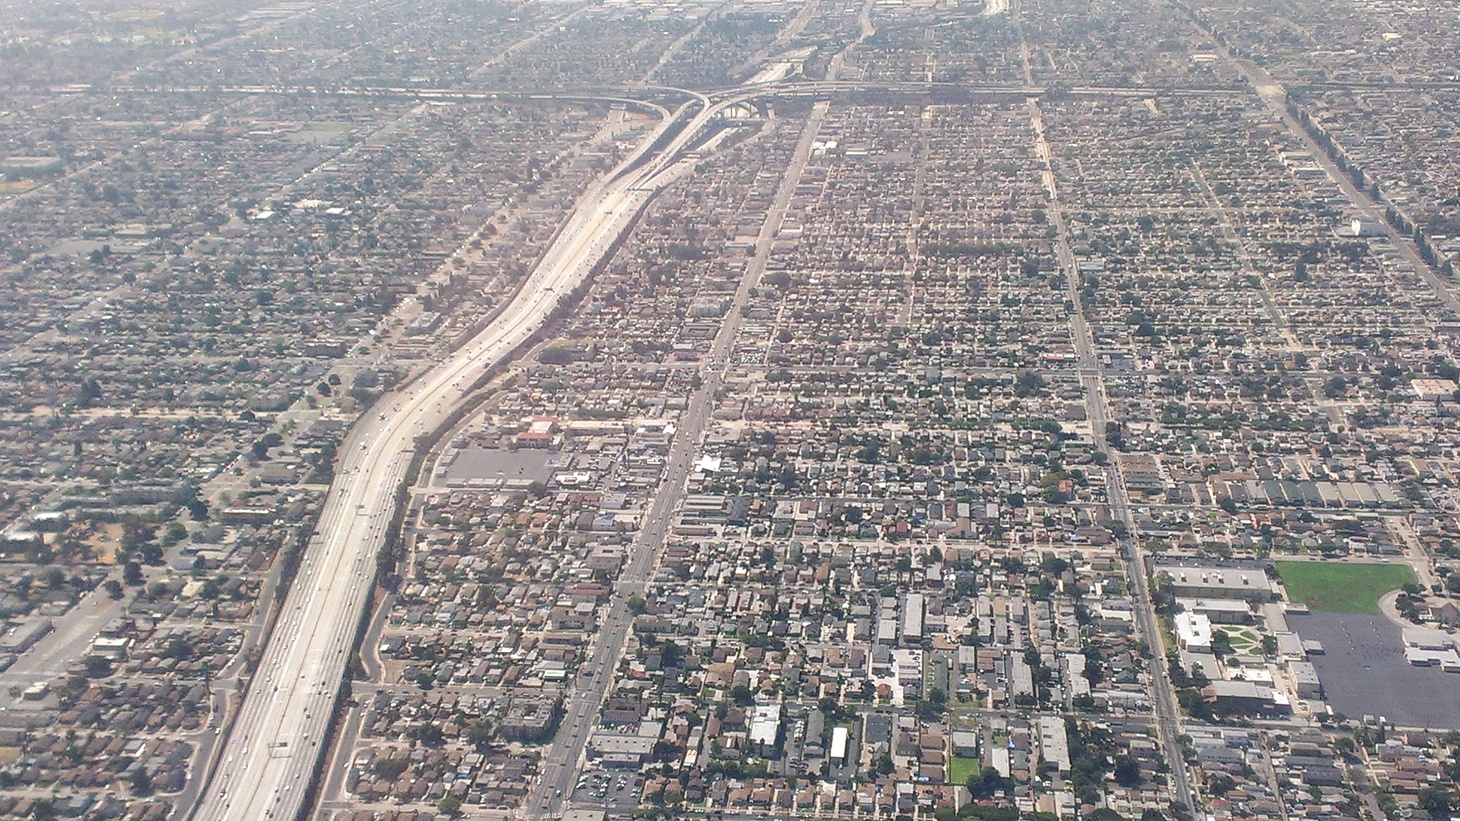 Today, the Los Angeles City Council votes on a proposal to give South L.A. a new name: SOLA. Why, and do neighborhood name changes ever translate to real-world changes on the ground?